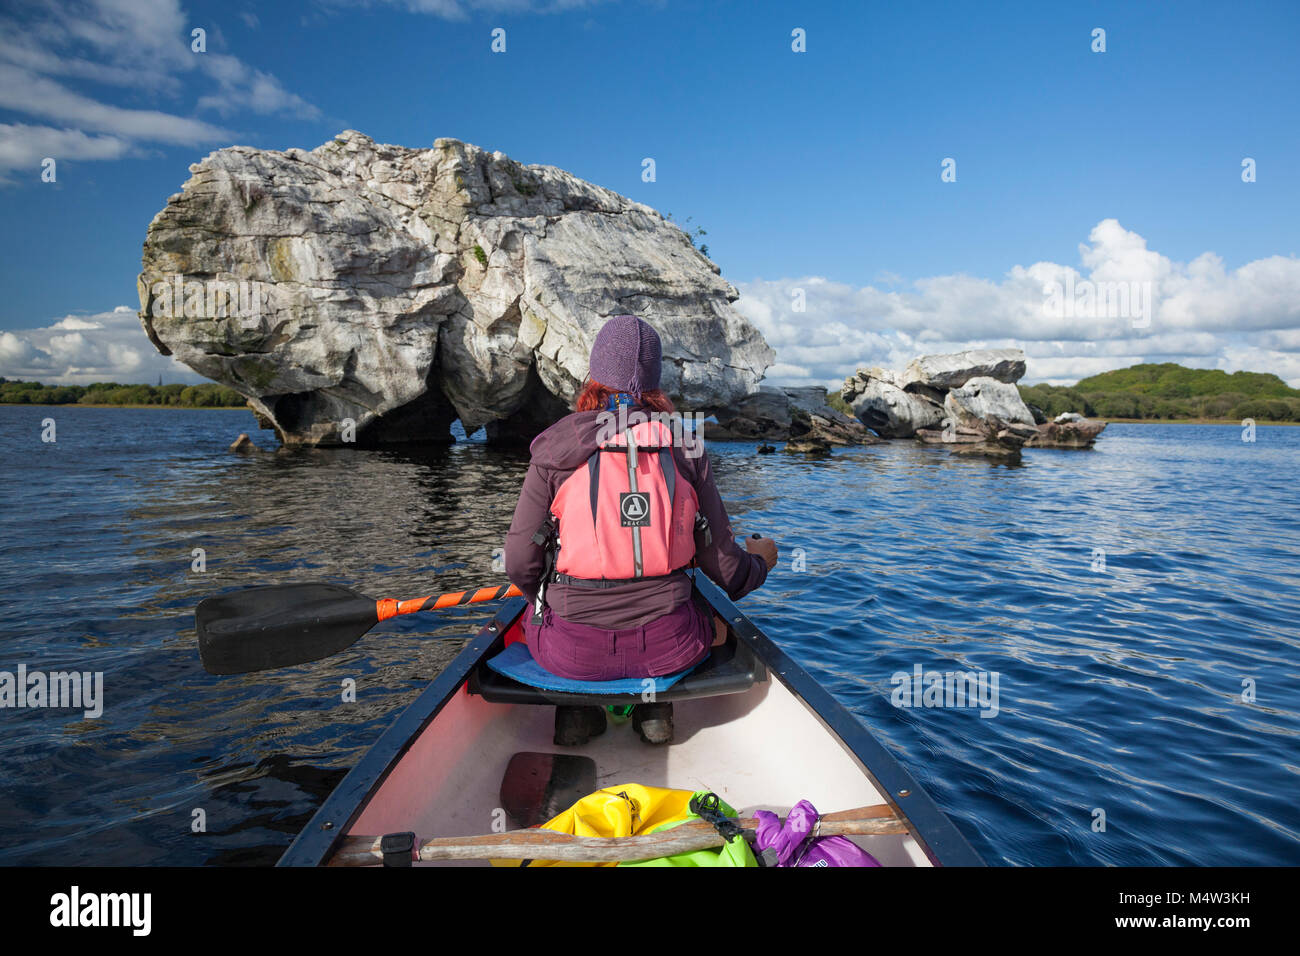 Canoeist beside Elephant Rock, Lough Leane, Killarney National Park, County Kerry, Ireland. - Stock Image